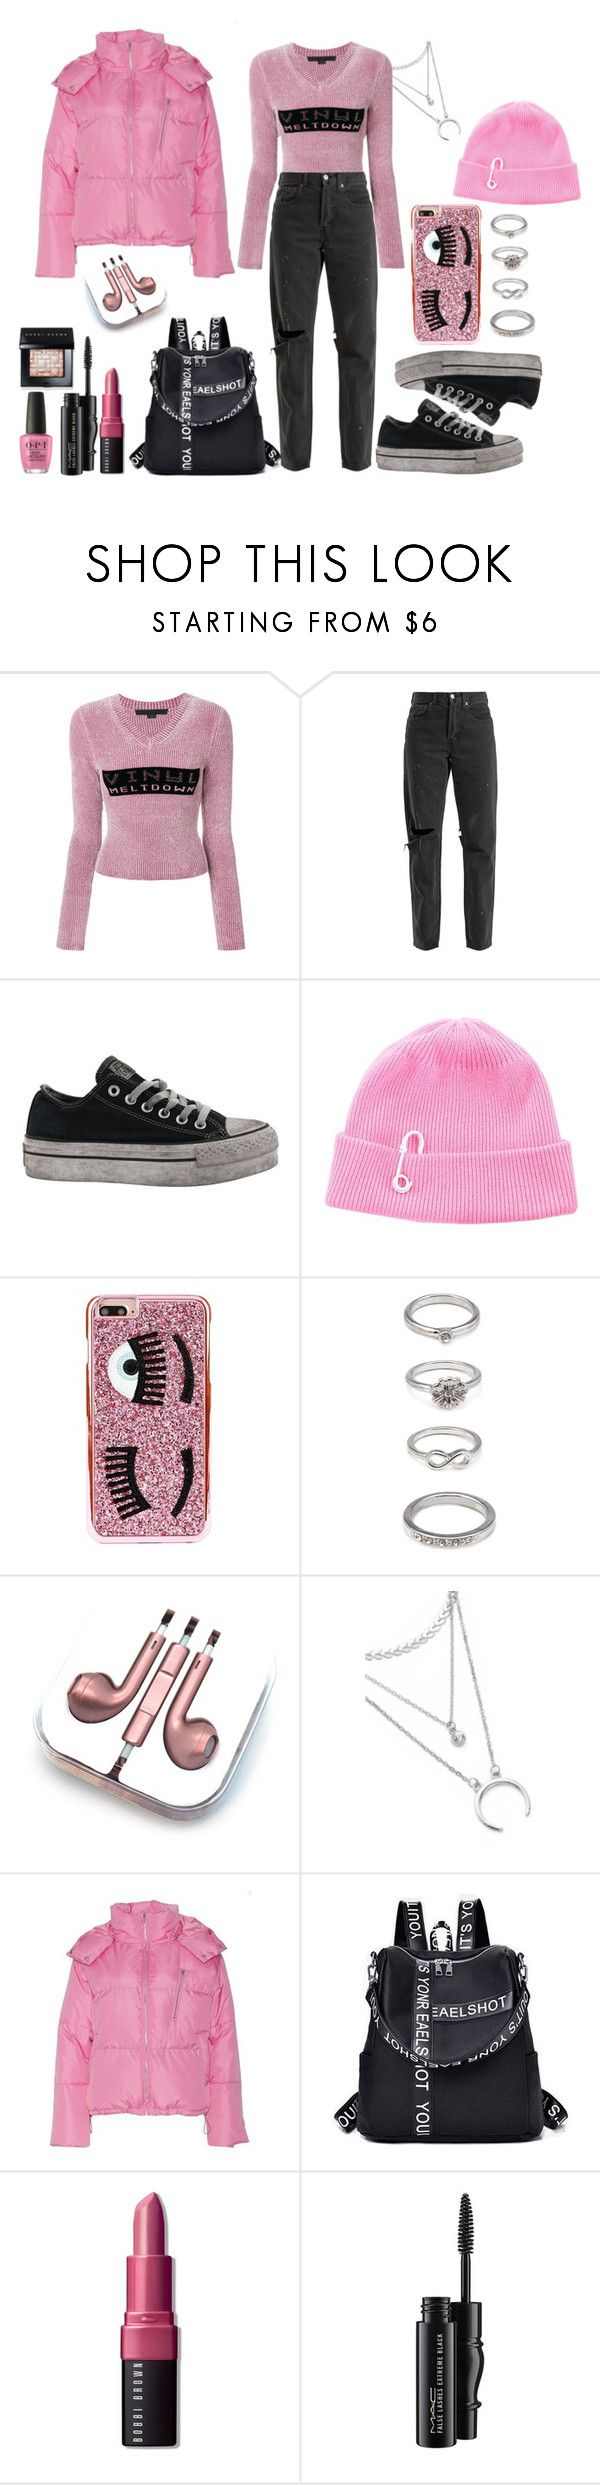 """PINK PUFFER COATS"" by nicks-1 ❤ liked on Polyvore featuring Alexander Wang, RE/DONE, Converse, TIBI, Chiara Ferragni, Forever 21, PhunkeeTree, NLY Trend, Bobbi Brown Cosmetics and MAC Cosmetics"